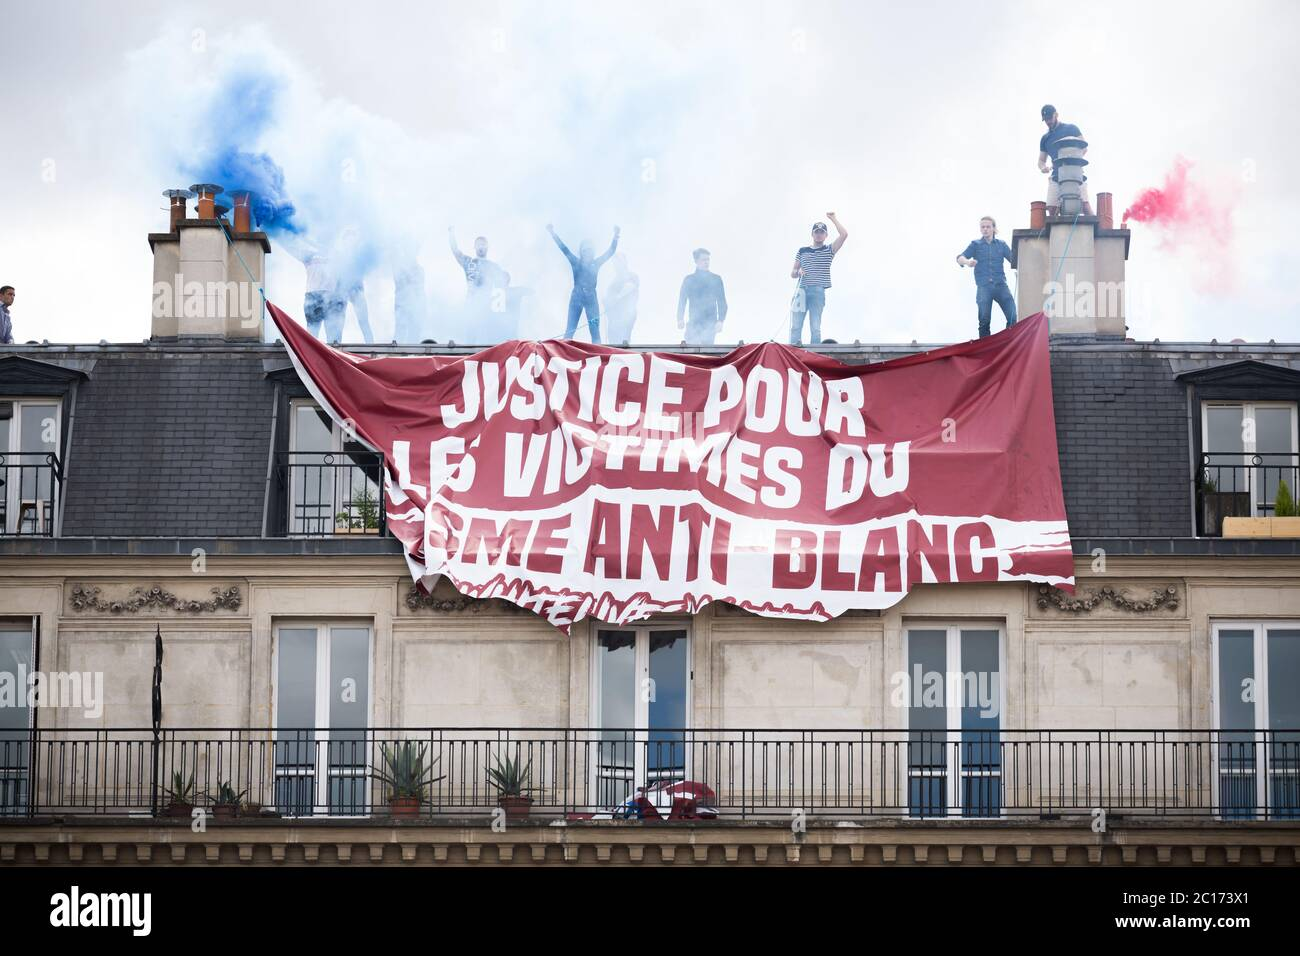 Paris, France. 13th June, 2020. Members of a right wing group that hung a banner in support of victims of anti-white racism cheer and light flares on top of a building at Place de la Republique during a Black Lives Matter protest in paris, France, on June 13th, 2020. (Photo by Daniel Brown/Sipa USA) Credit: Sipa USA/Alamy Live News Stock Photo